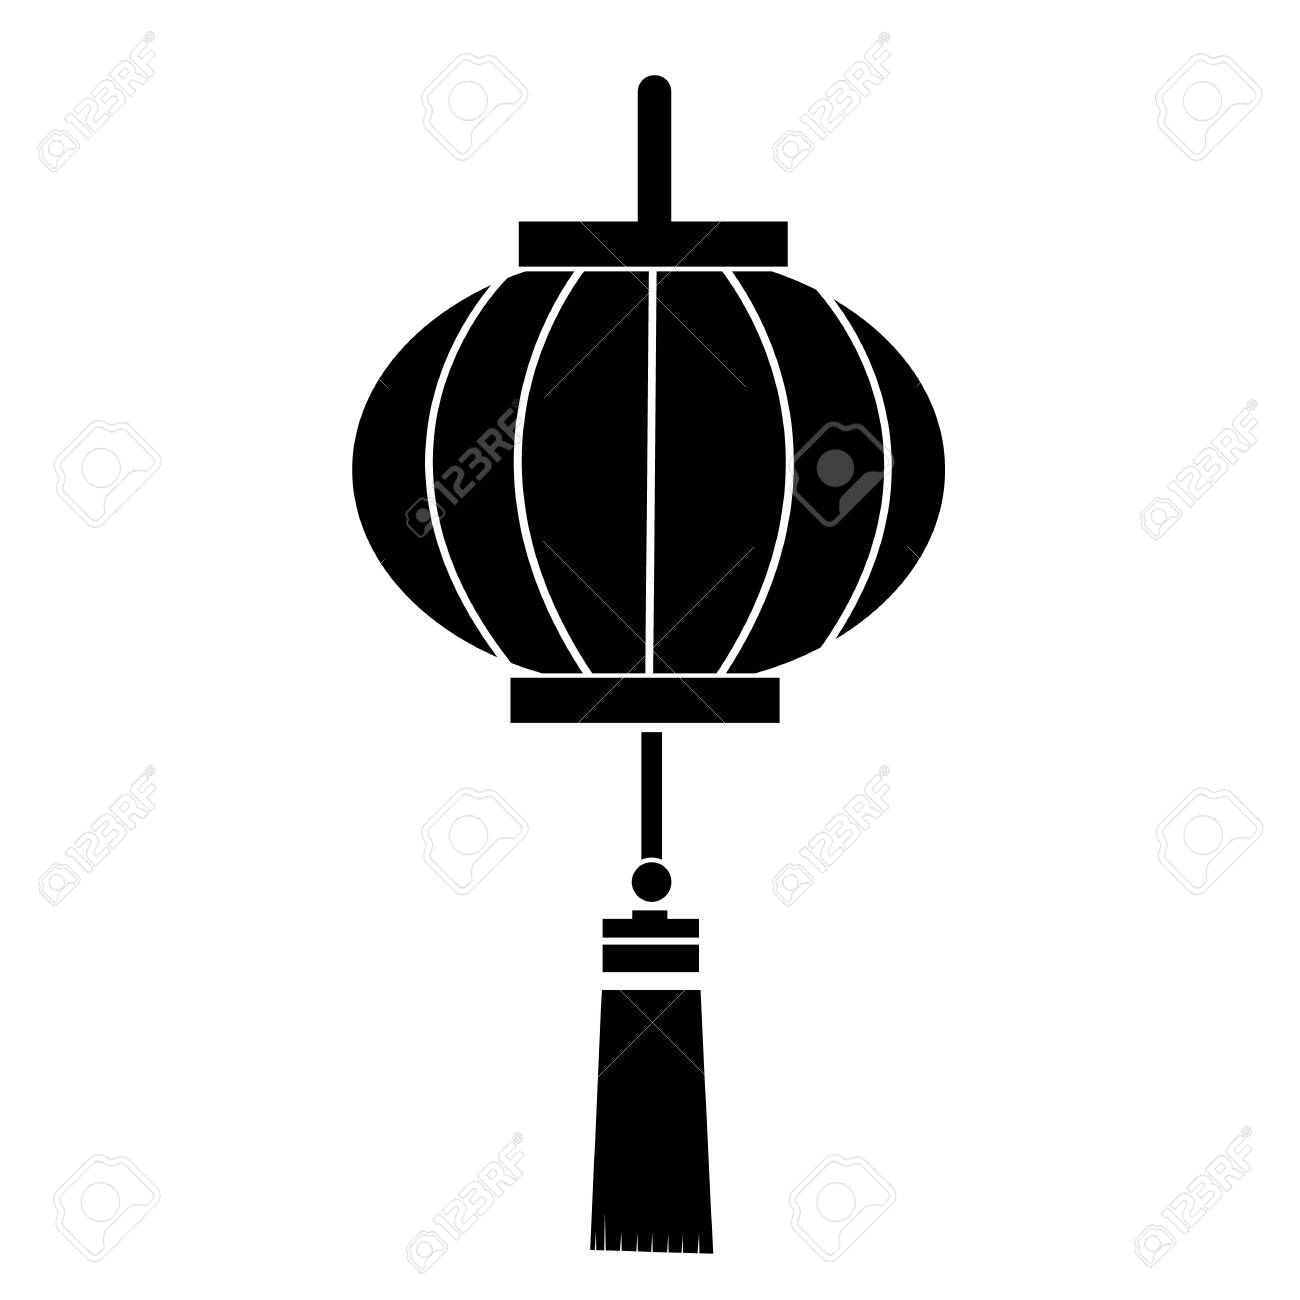 Chinese Lantern Icon On White Background Flat Style Chinese Royalty Free Cliparts Vectors And Stock Illustration Image 147224139